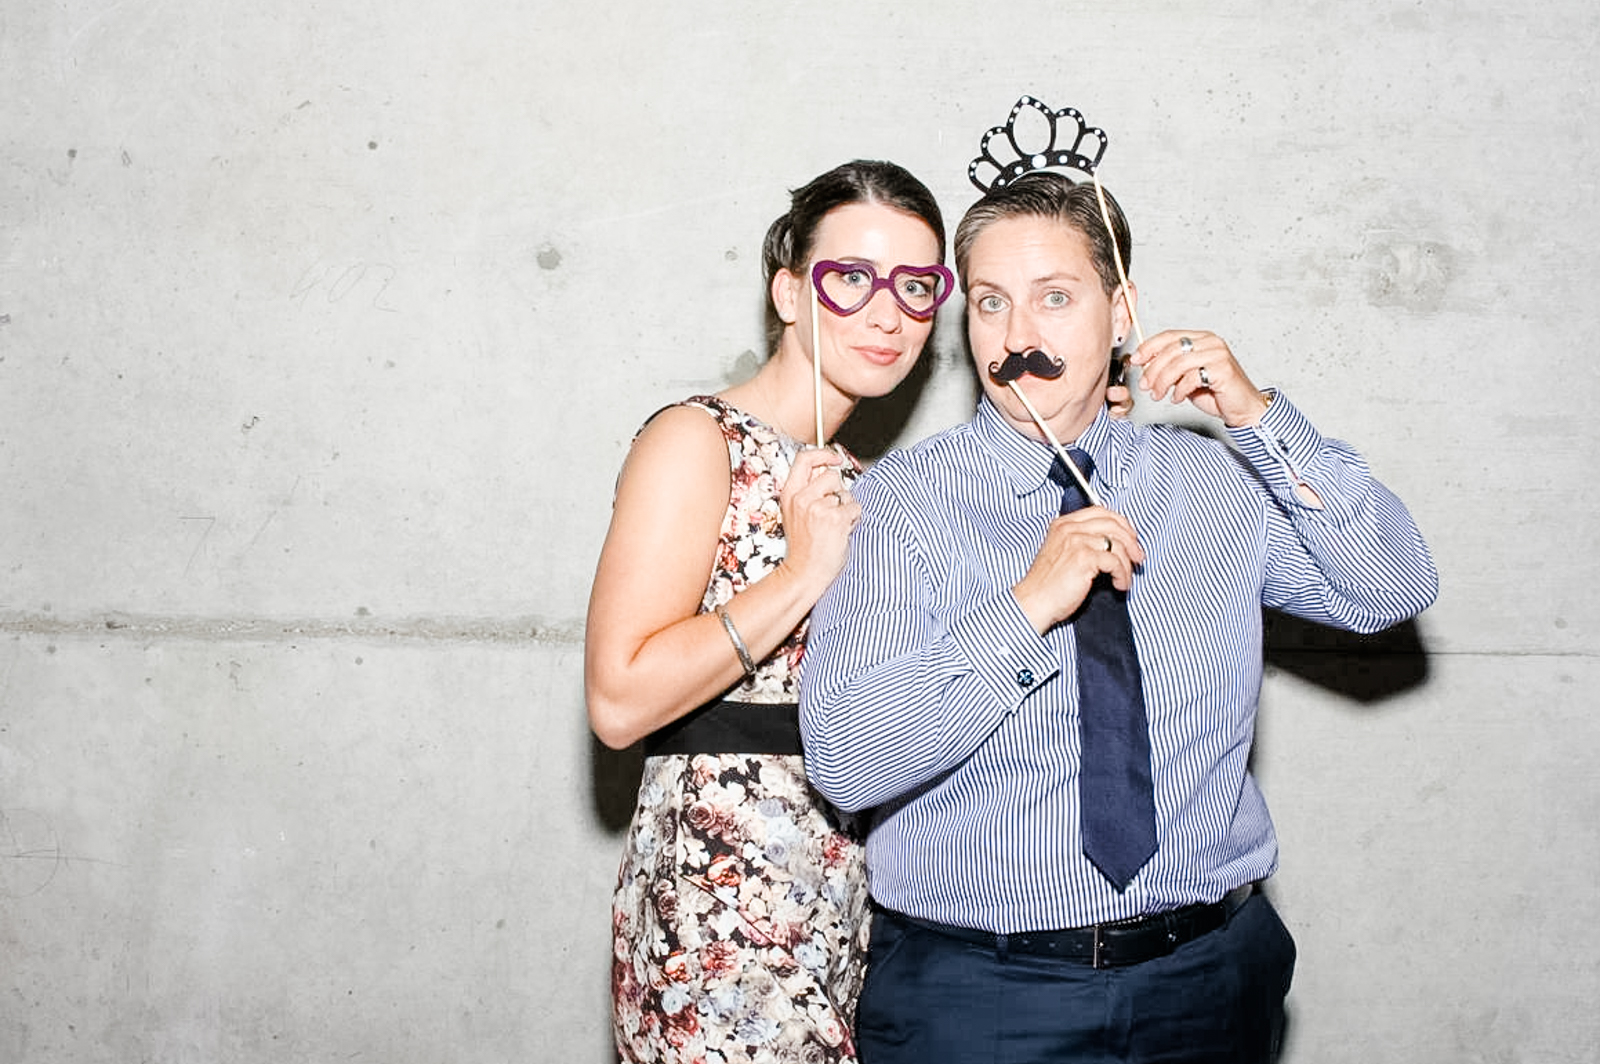 Monstergraphie_Photobooth_Zeche_Zollverein-19.jpg?fit=1600%2C1064